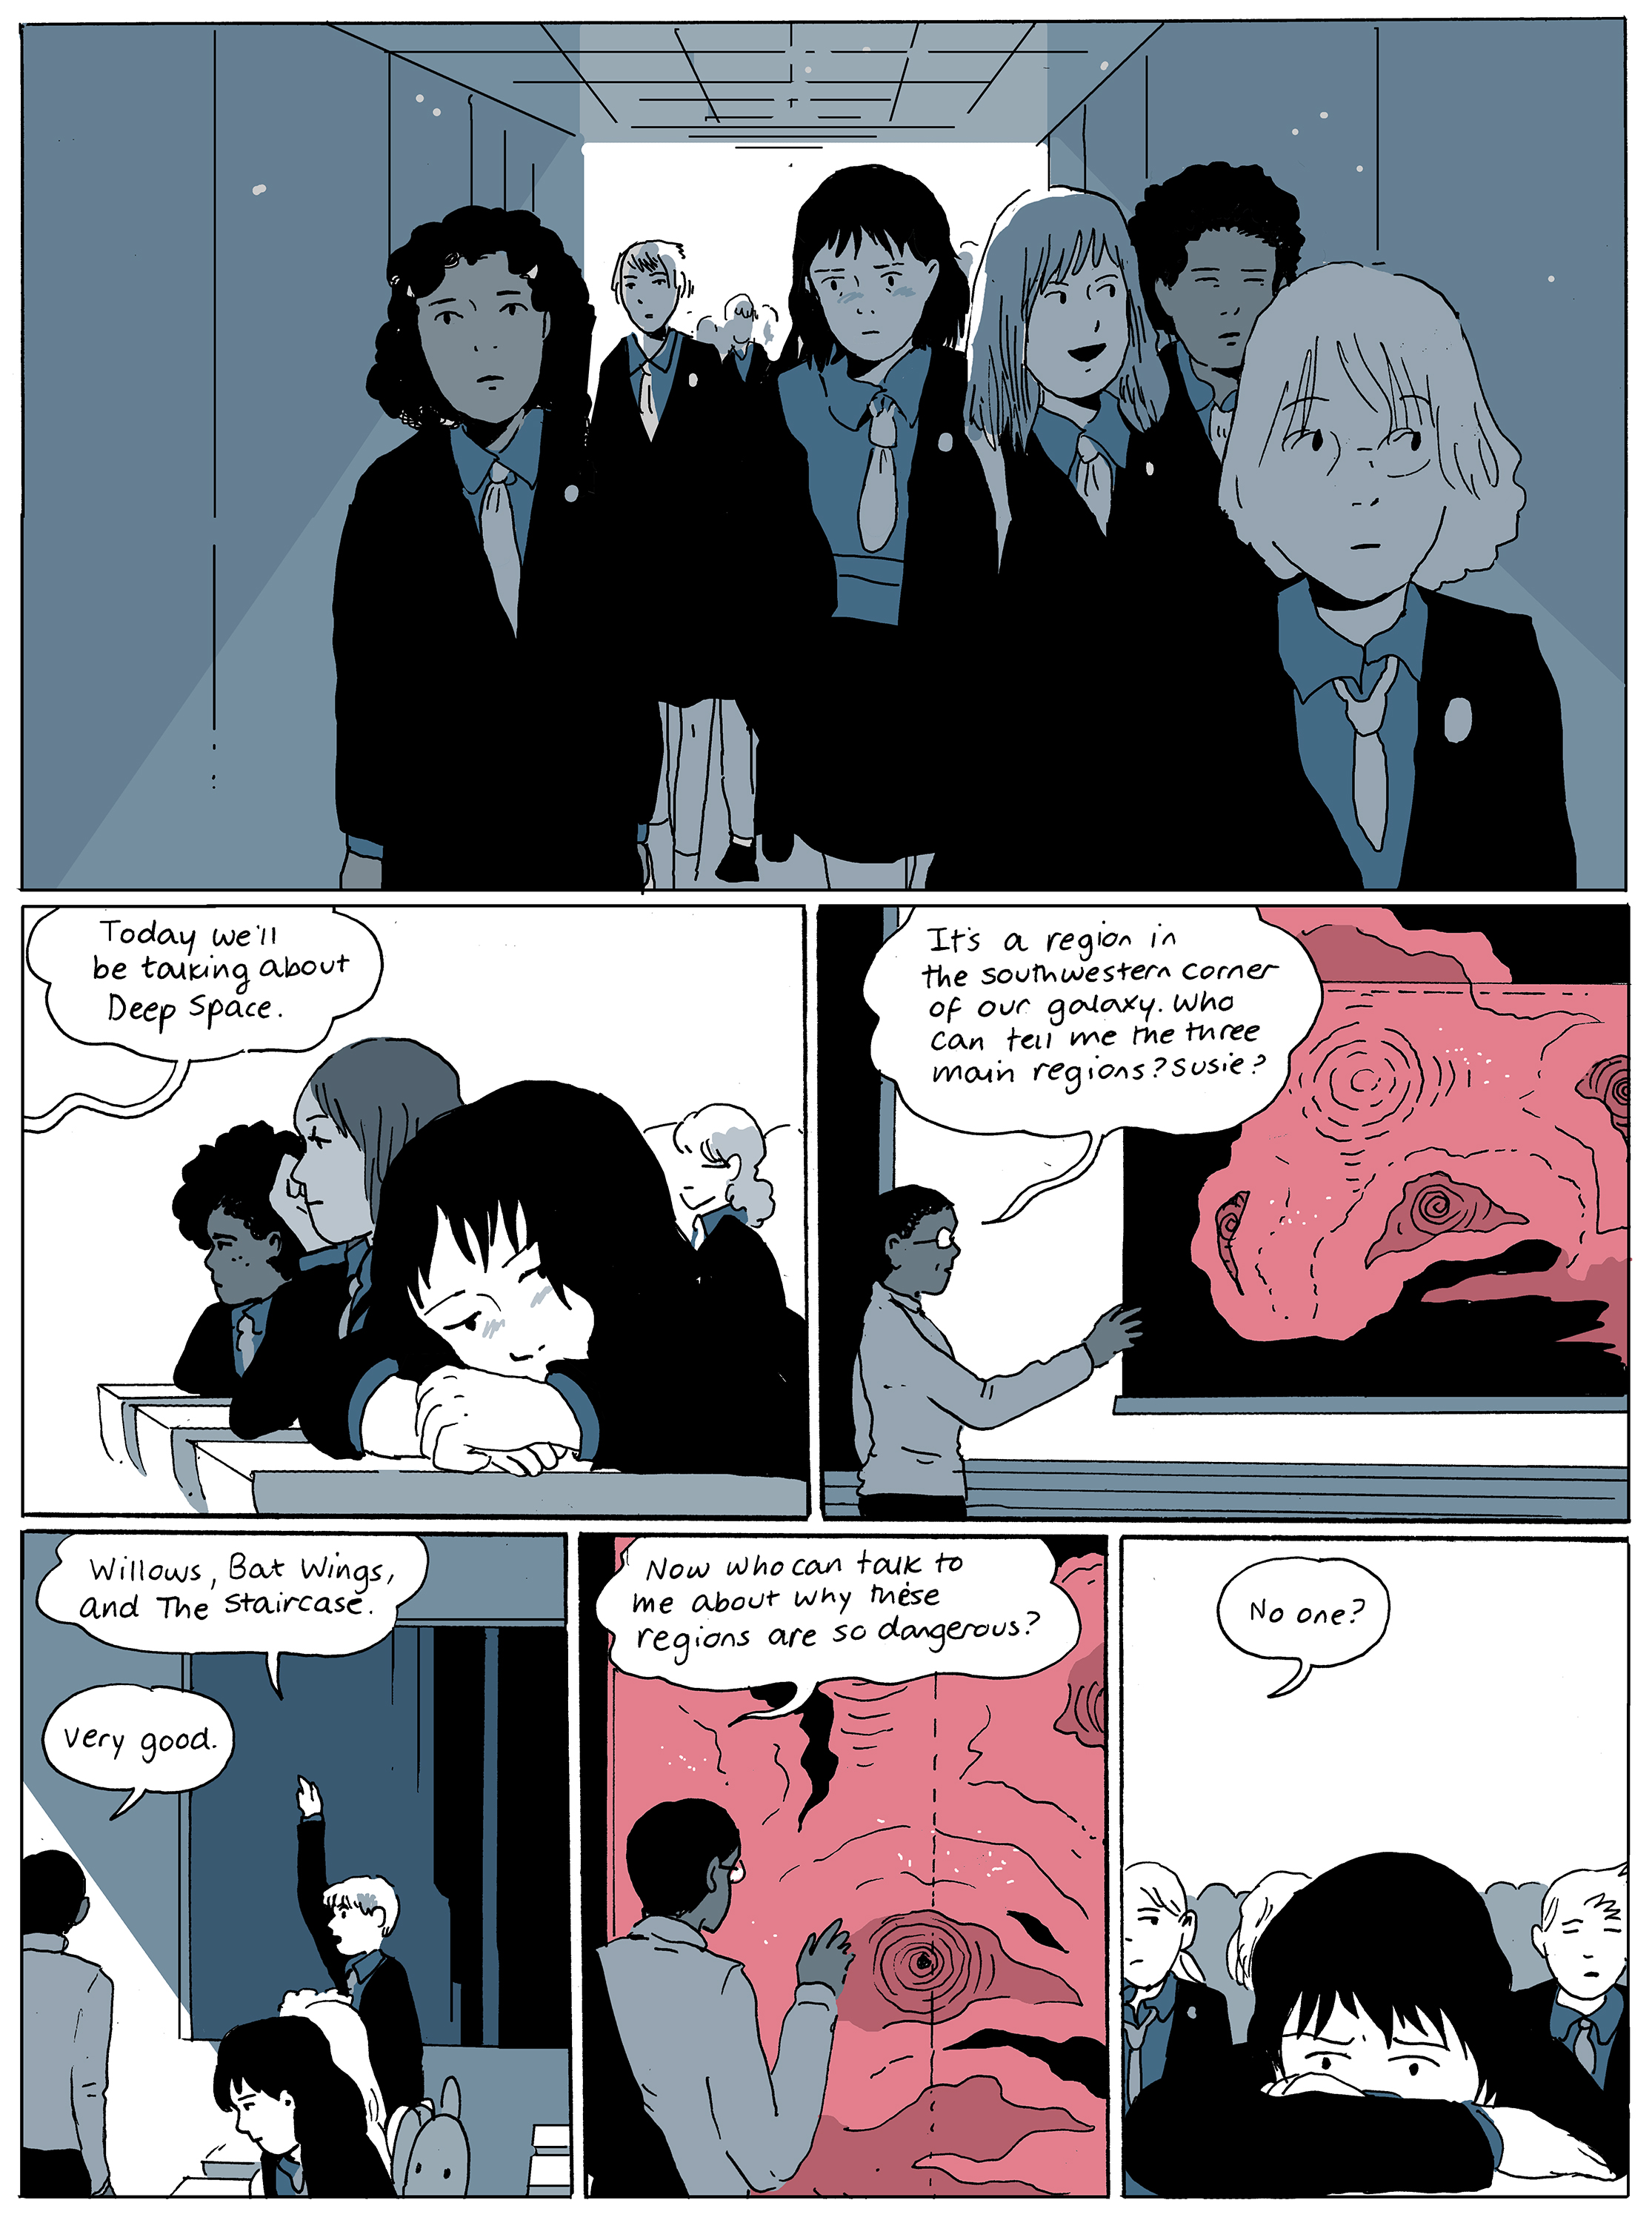 chapter05_page02.jpg